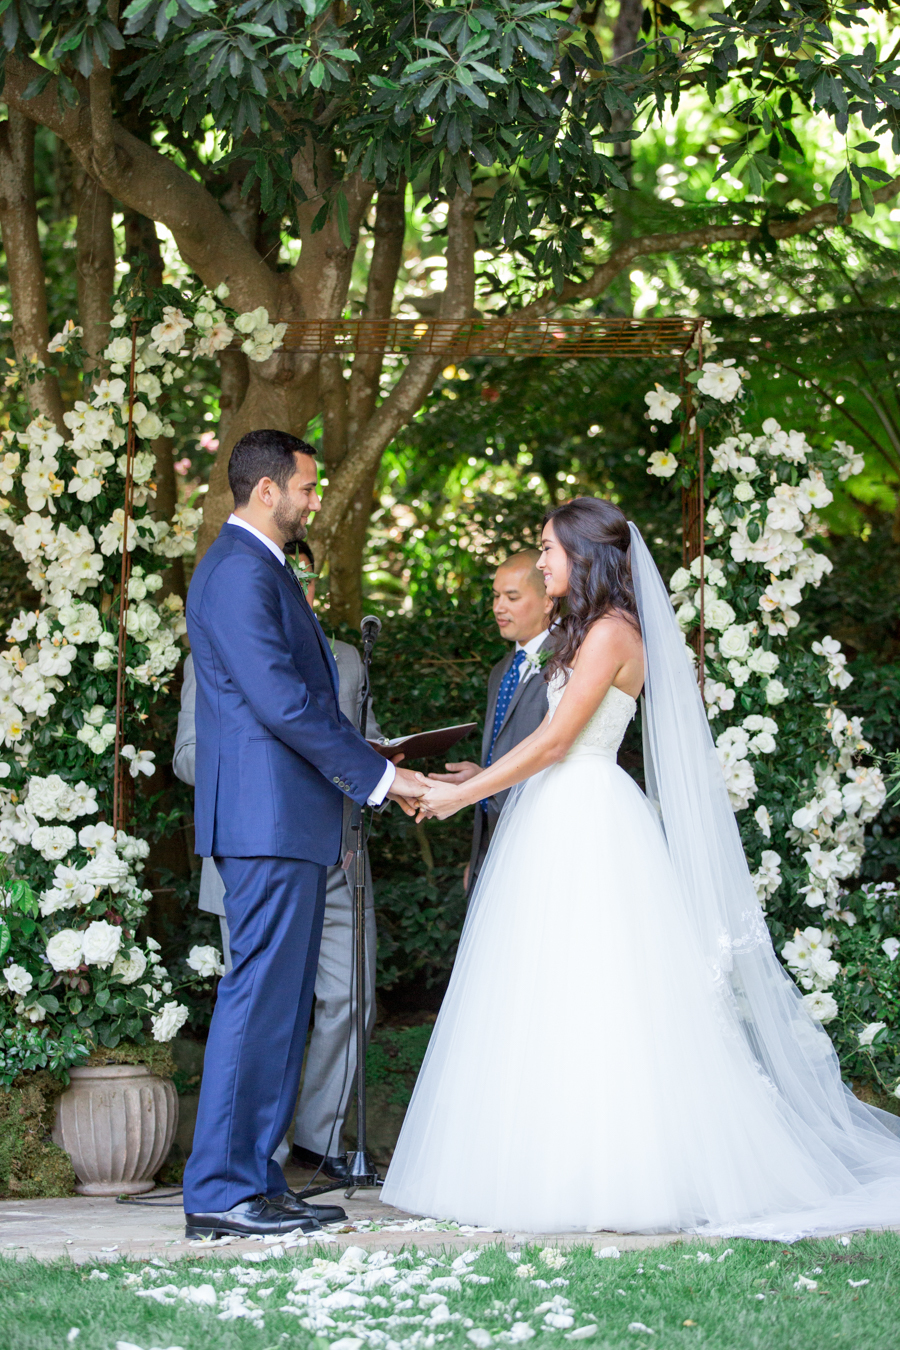 www.santabarbarawedding.com | Michael + Anna Costa Photography | Butterfly Lane Estate | Soigne Productions | Tricia Fountaine Designs | The Get Down Boys | Lovespun Films | Couple at Ceremony